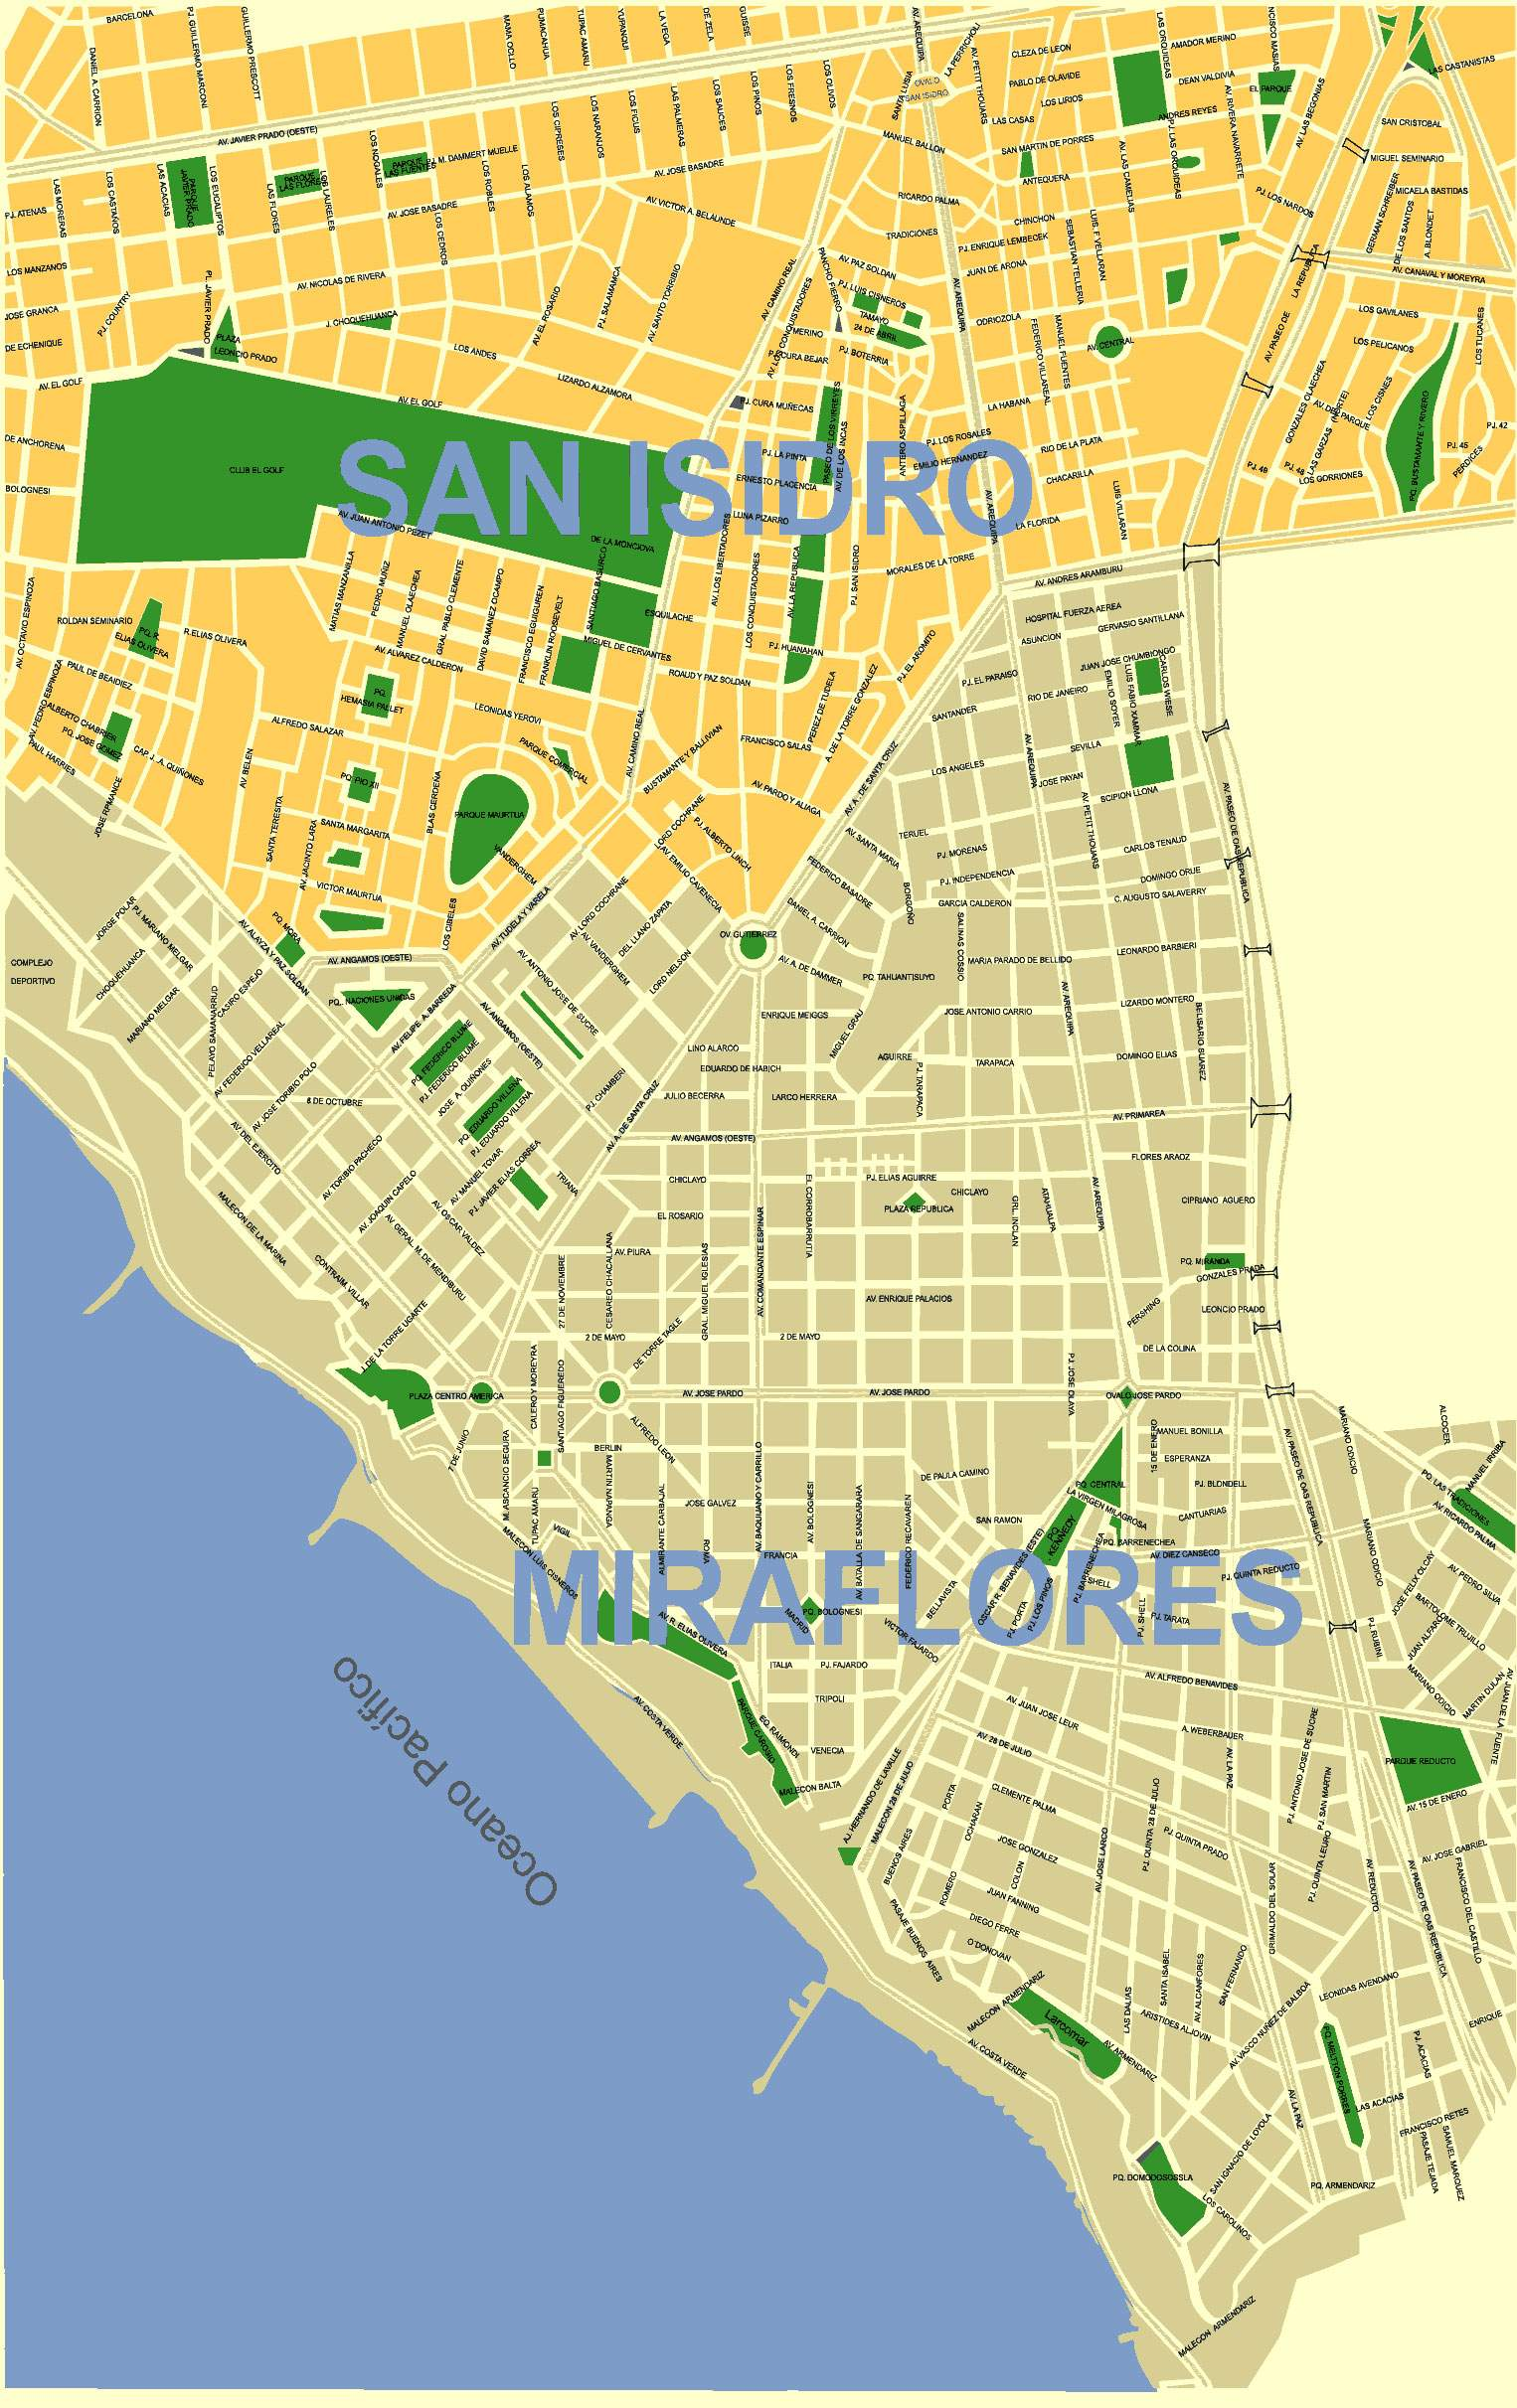 Large Lima Maps For Free Download And Print HighResolution And - Peru map lima